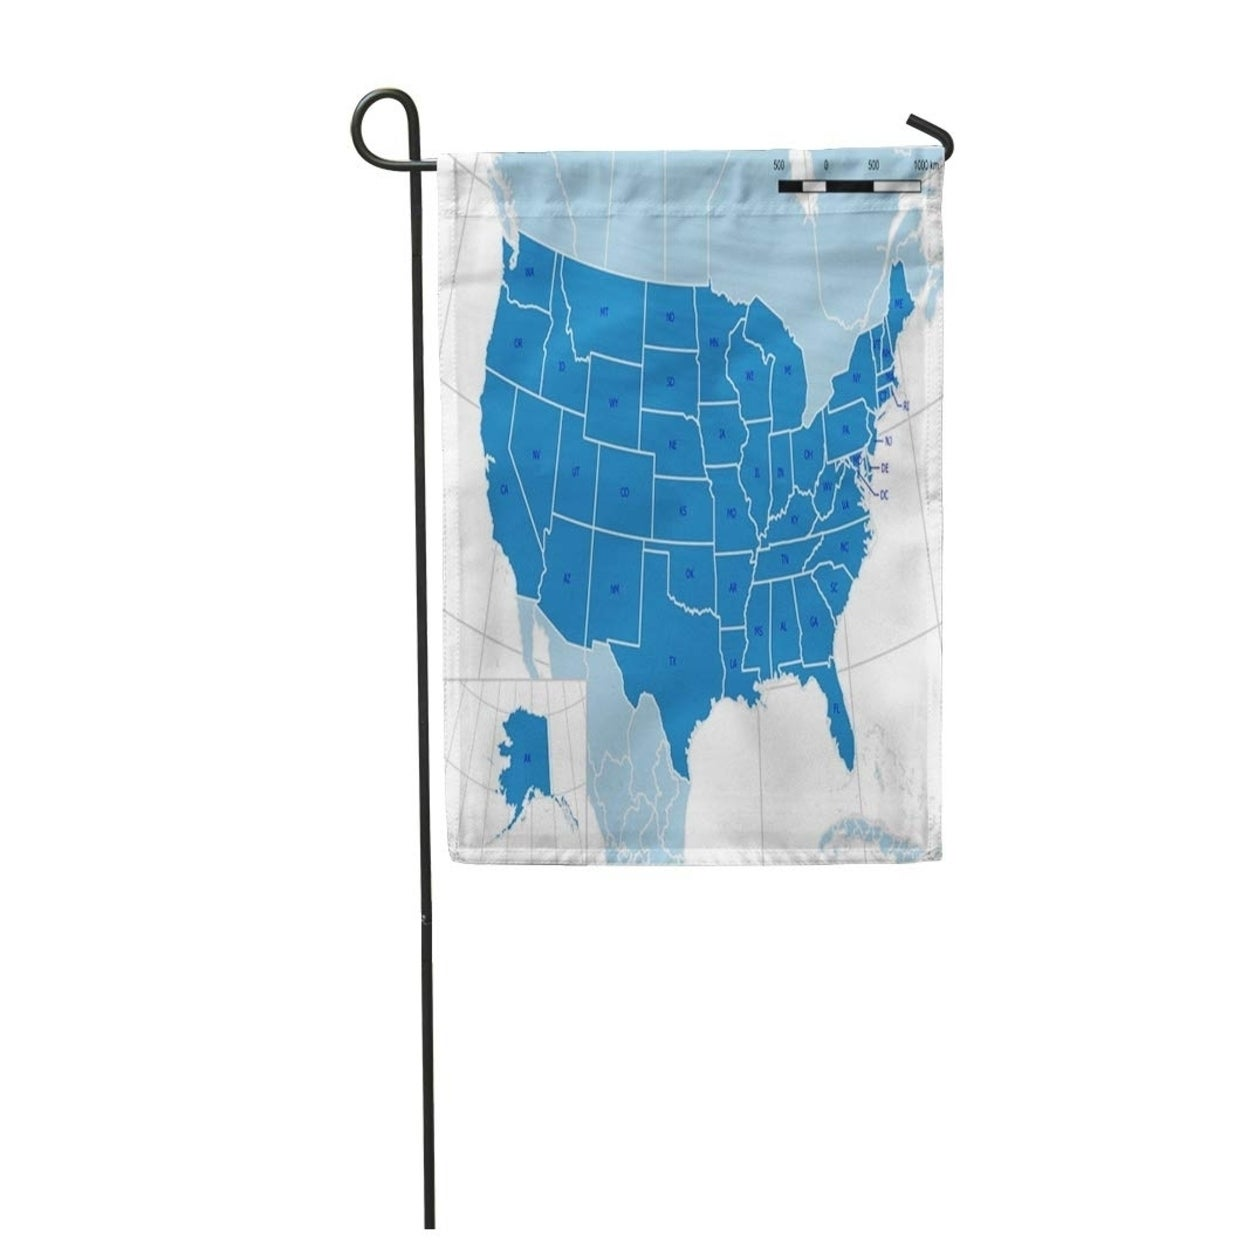 Shop United States Map Detailed Layers Postal Abbreviations Scale Bar Garden Flag Decorative Flag House Banner 12x18 Inch On Sale Overstock 31382650